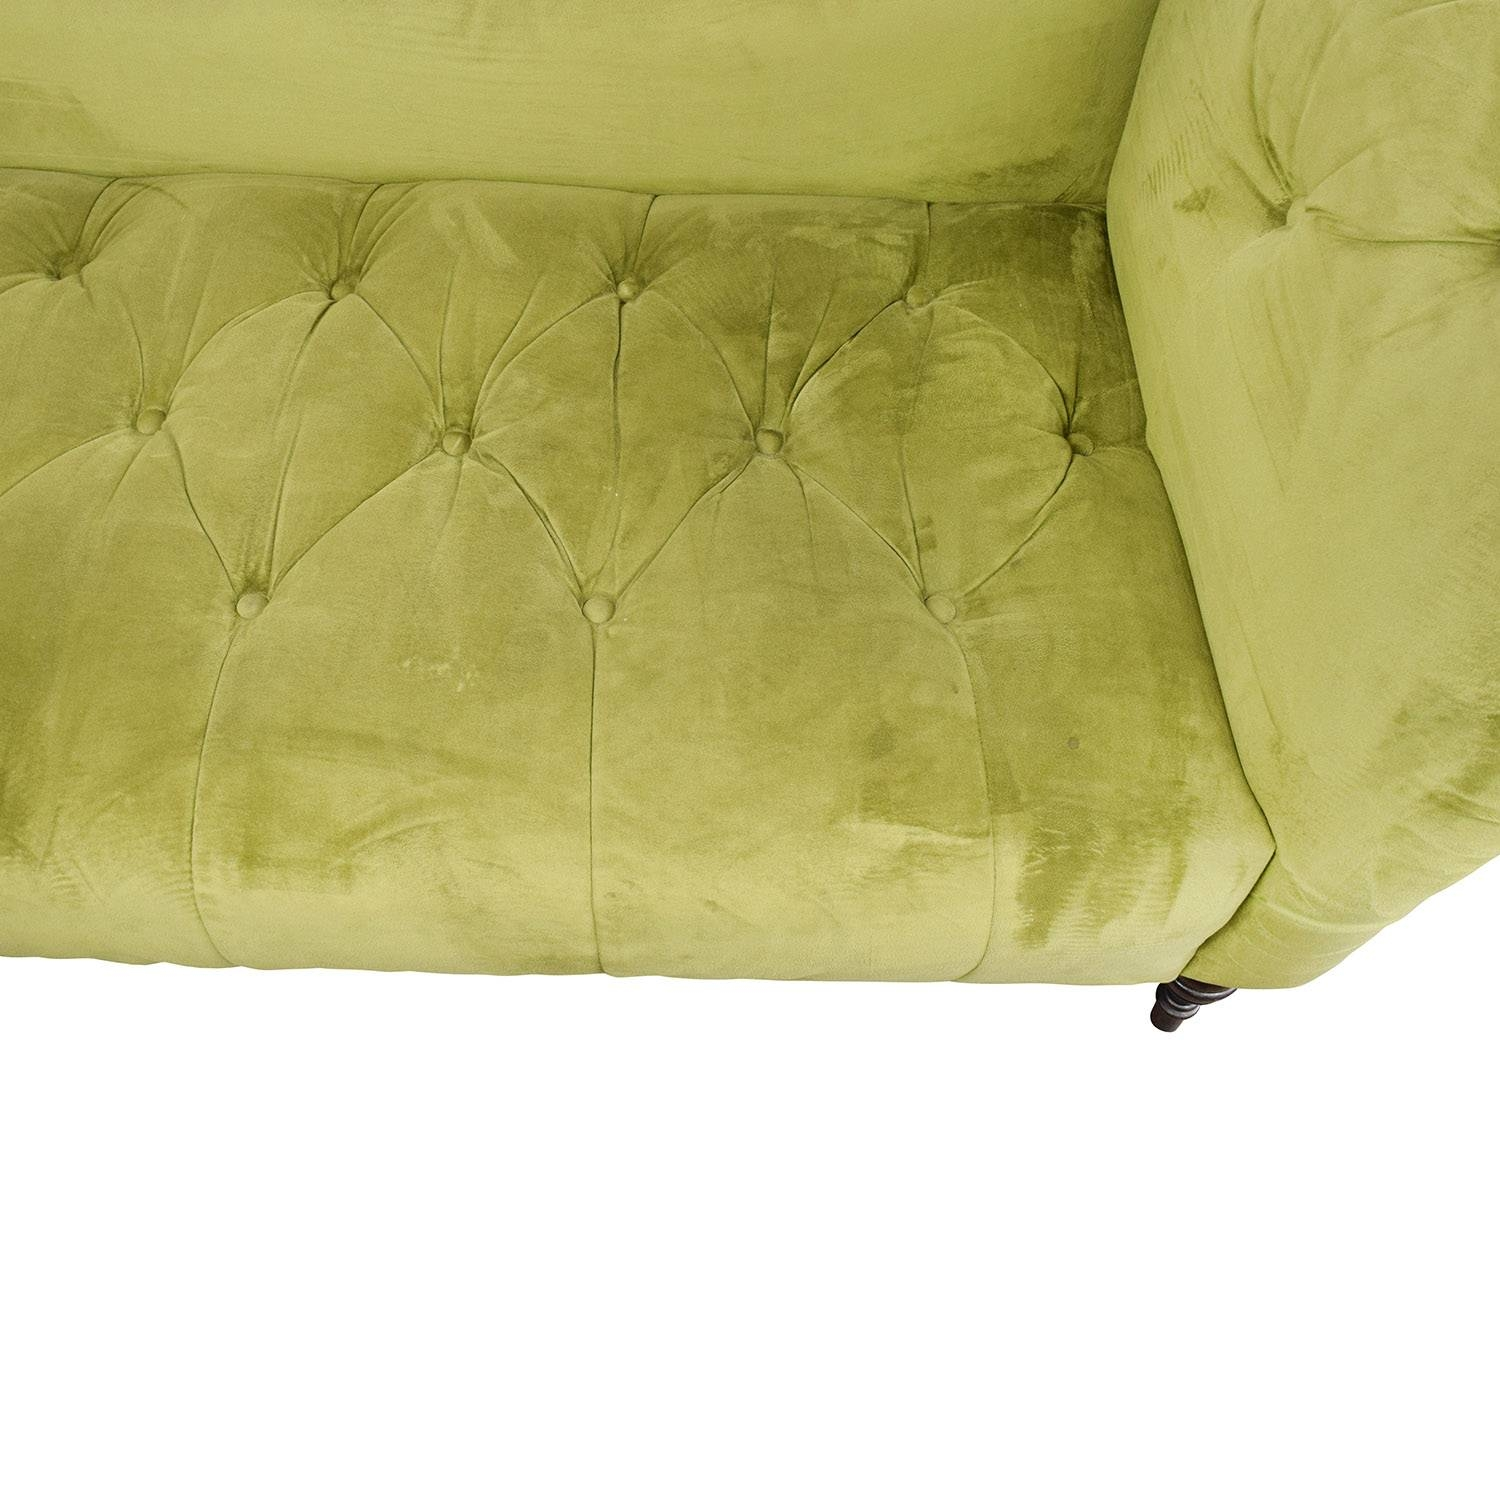 43% Off - Urban Outfitters Urban Outfitters Antoinette Tufted intended for Antoinette Sofas (Image 3 of 15)